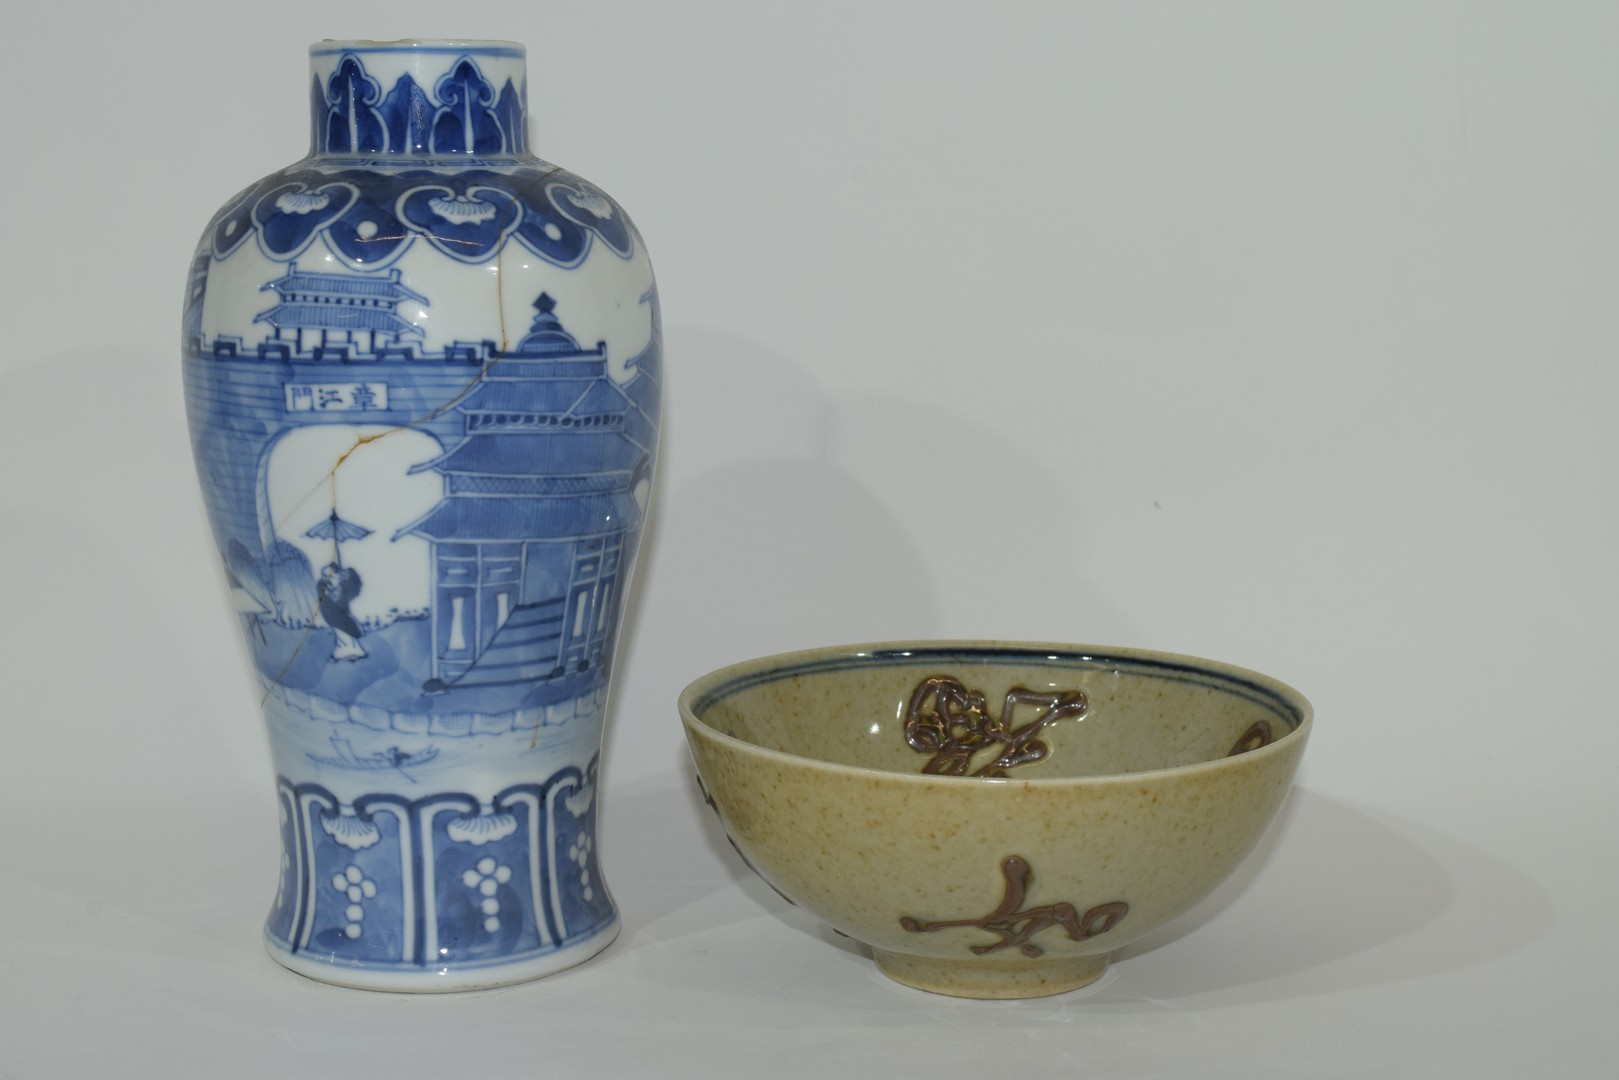 19th century Chinese porcelain bowl - Image 5 of 17